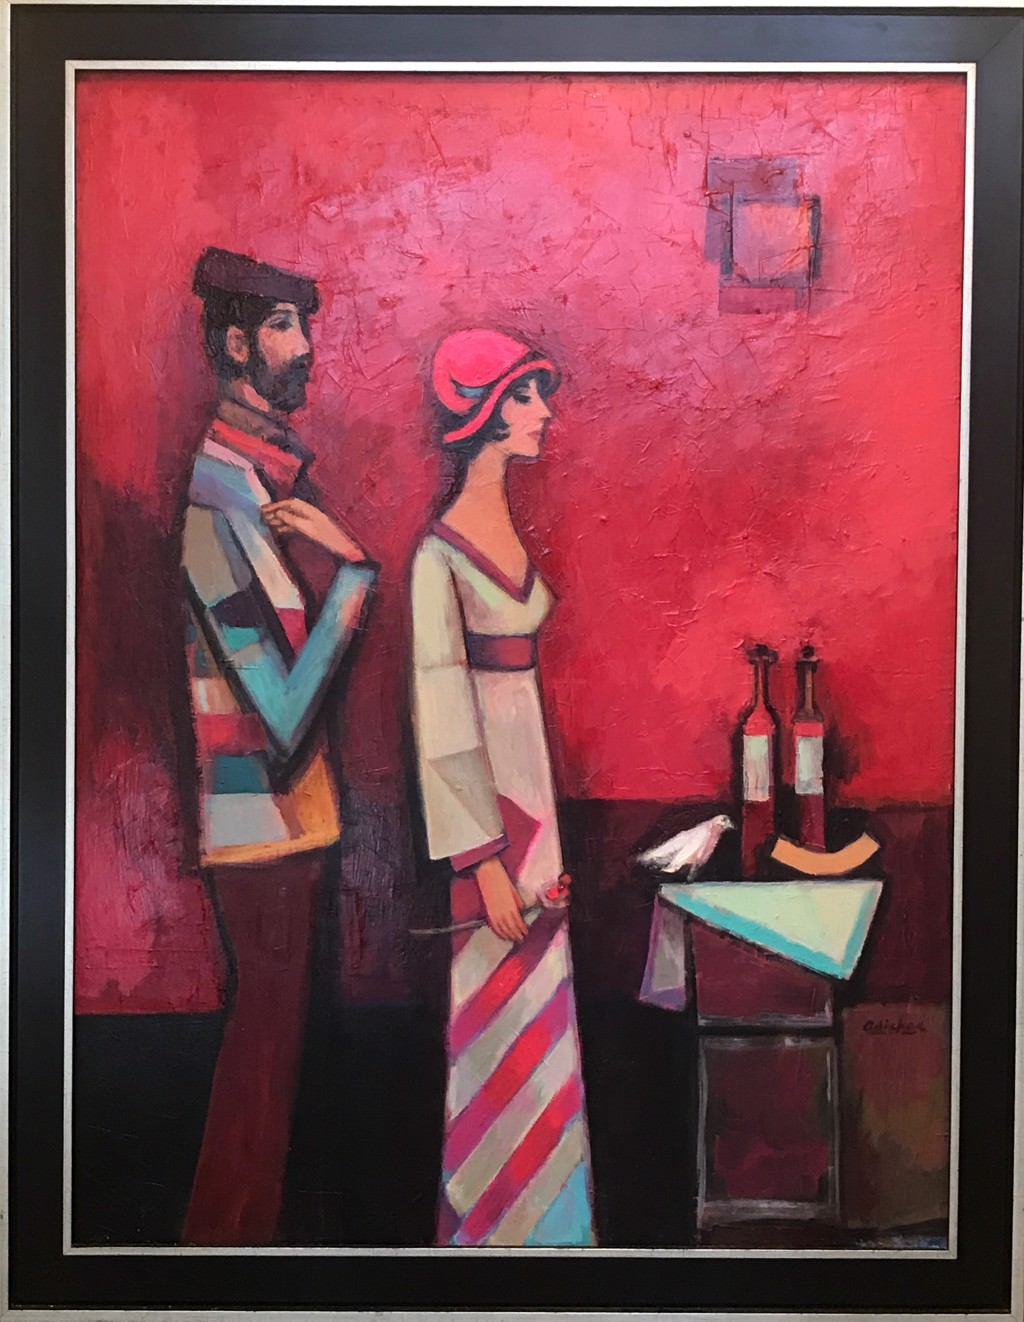 Couple, Red Studio by David Adickes